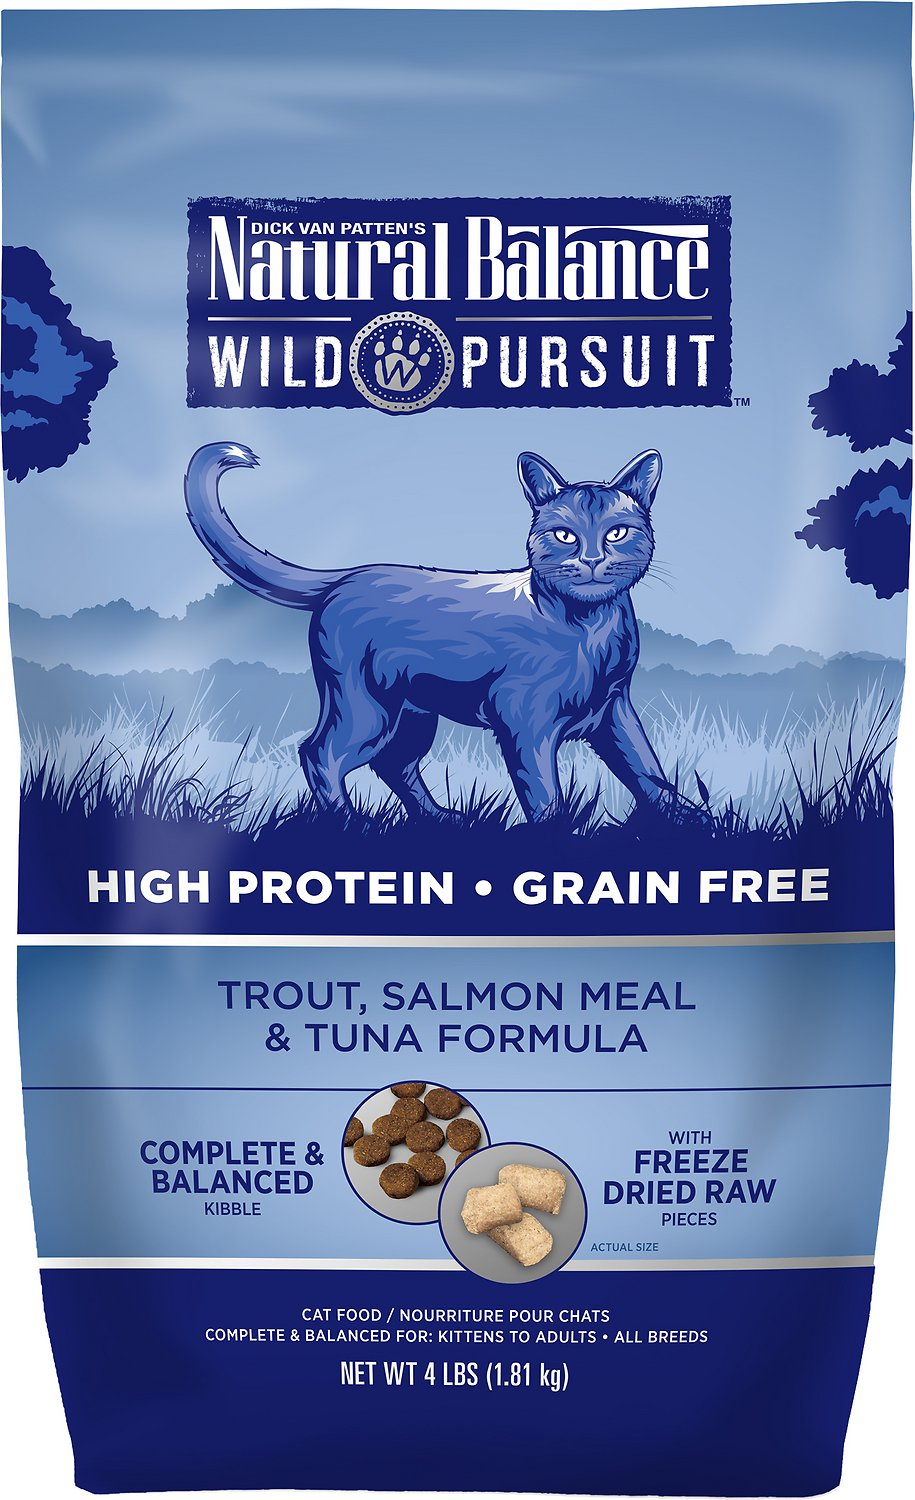 Natural Balance Wild Pursuit Trout, Salmon Meal & Tuna Formula Grain-Free Dry Cat Food, 4-lb bag